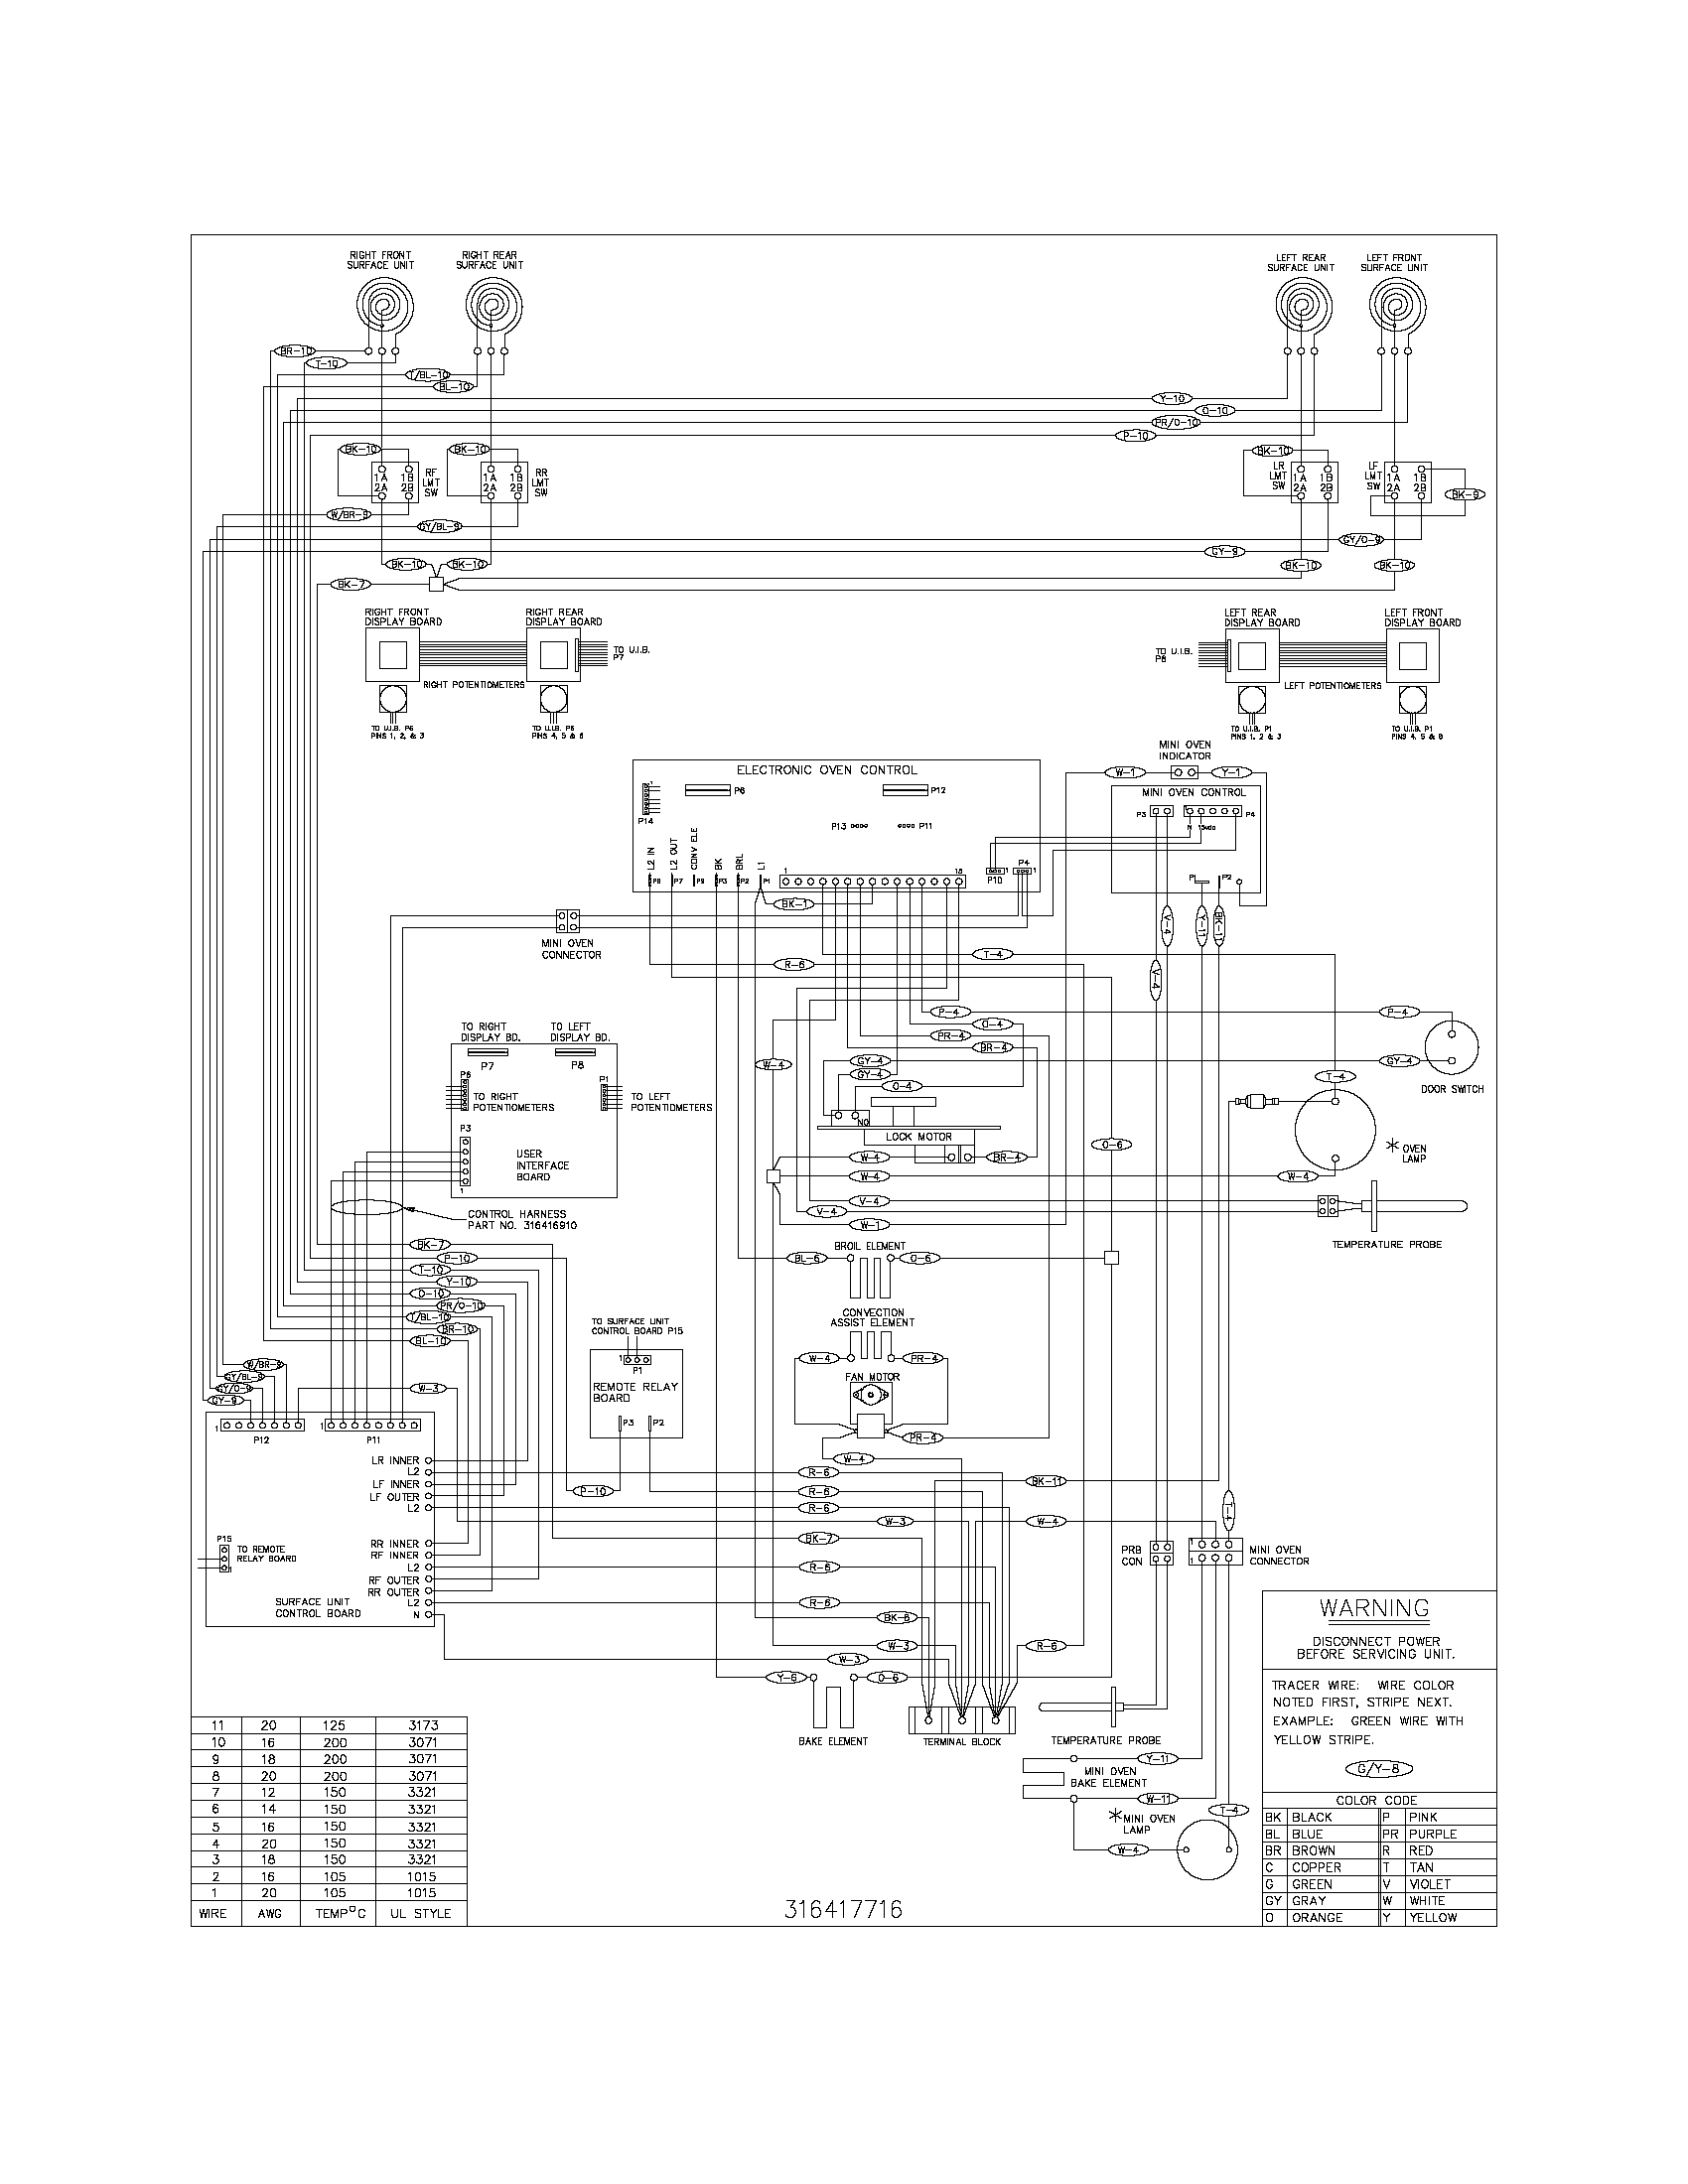 wiring installation diagram 2003 ford f150 alternator frigidaire glefm397dsb electric range timer stove clocks